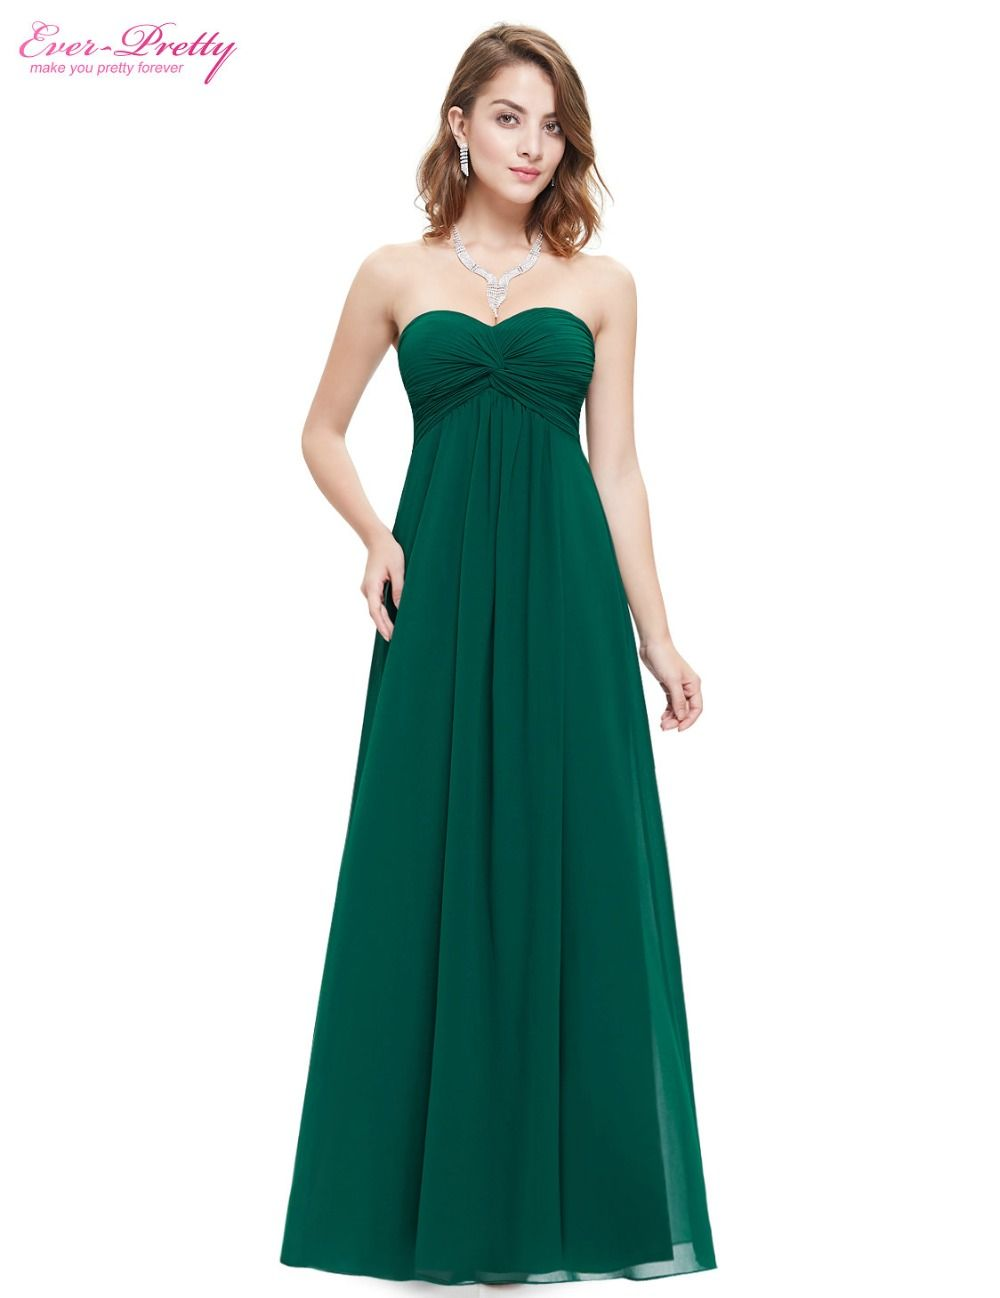 Night Cheap dresses pictures